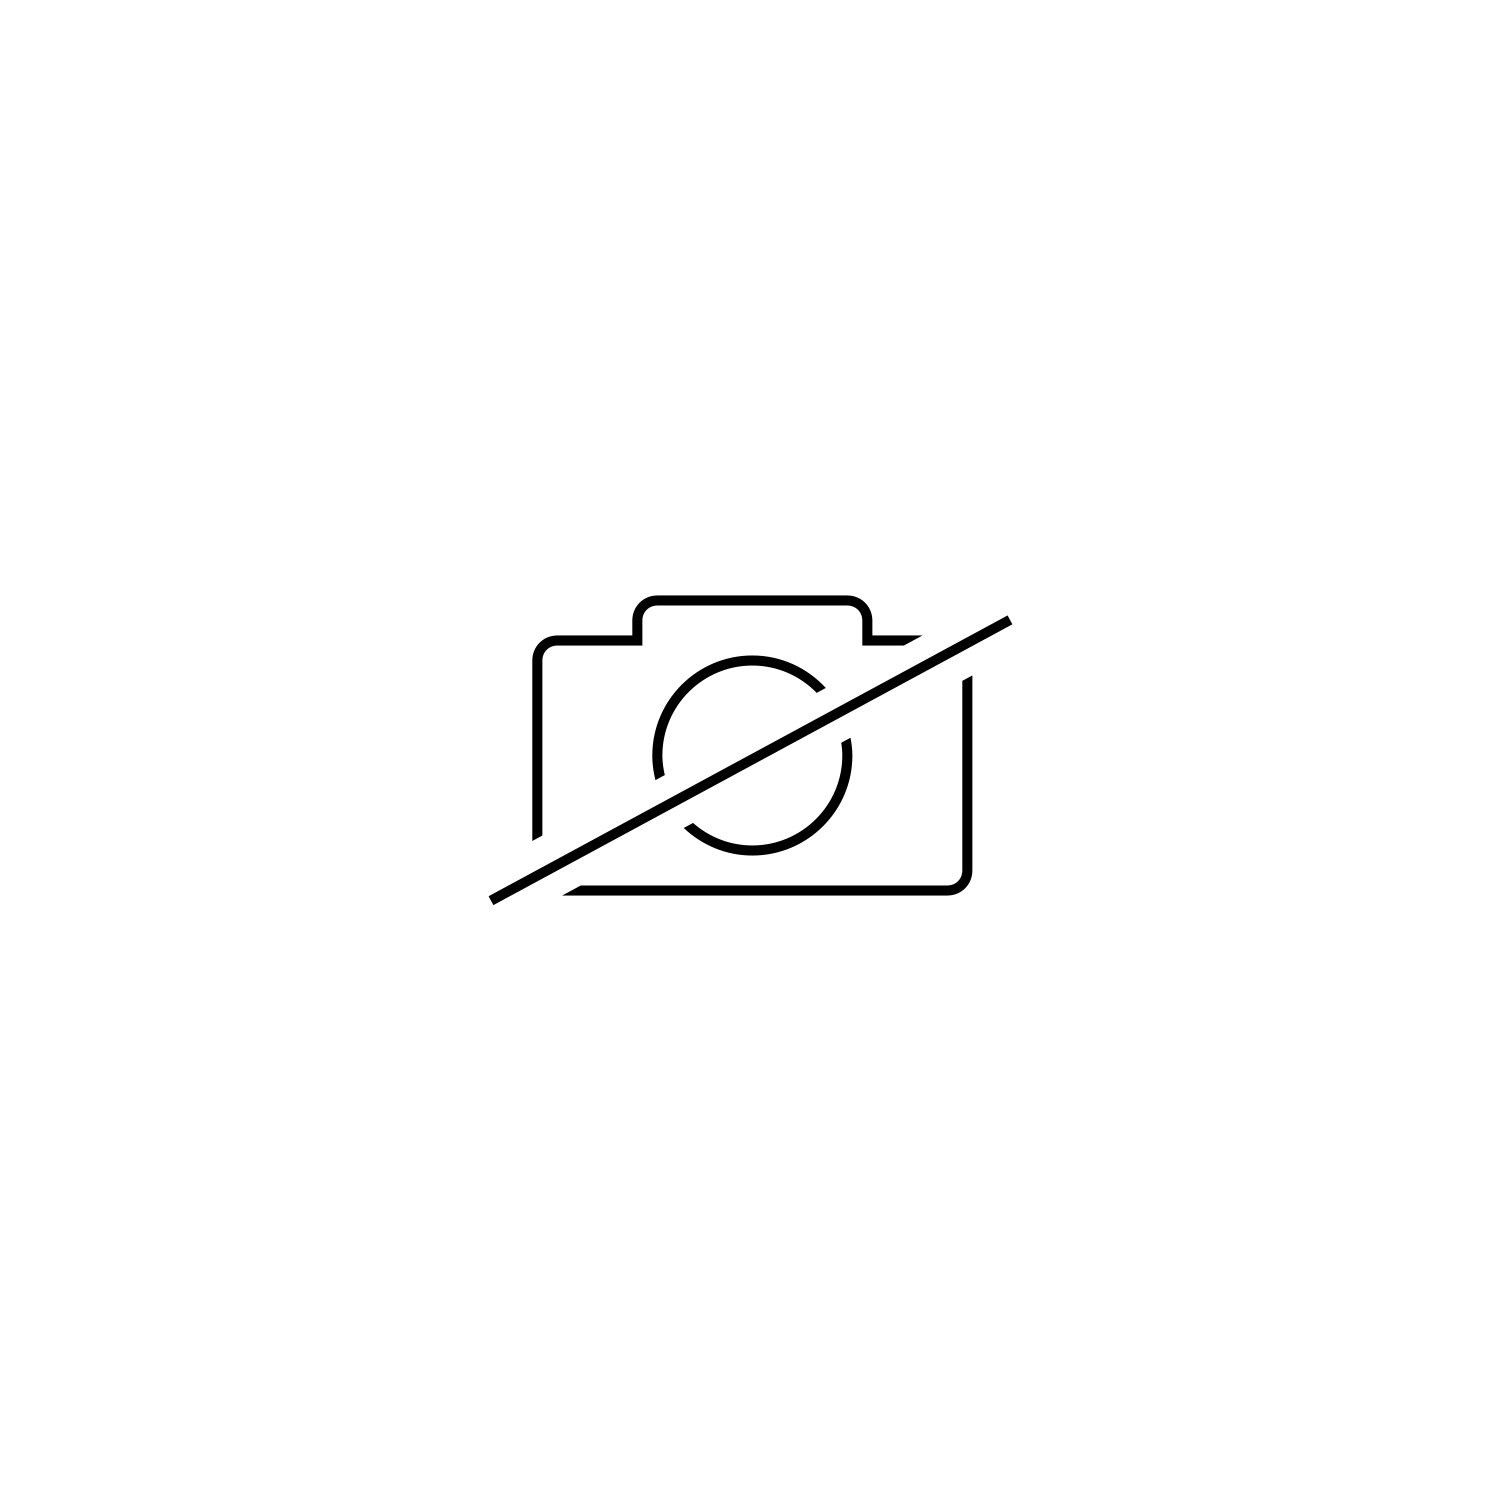 Audi insulated mug, stainless steel, silver